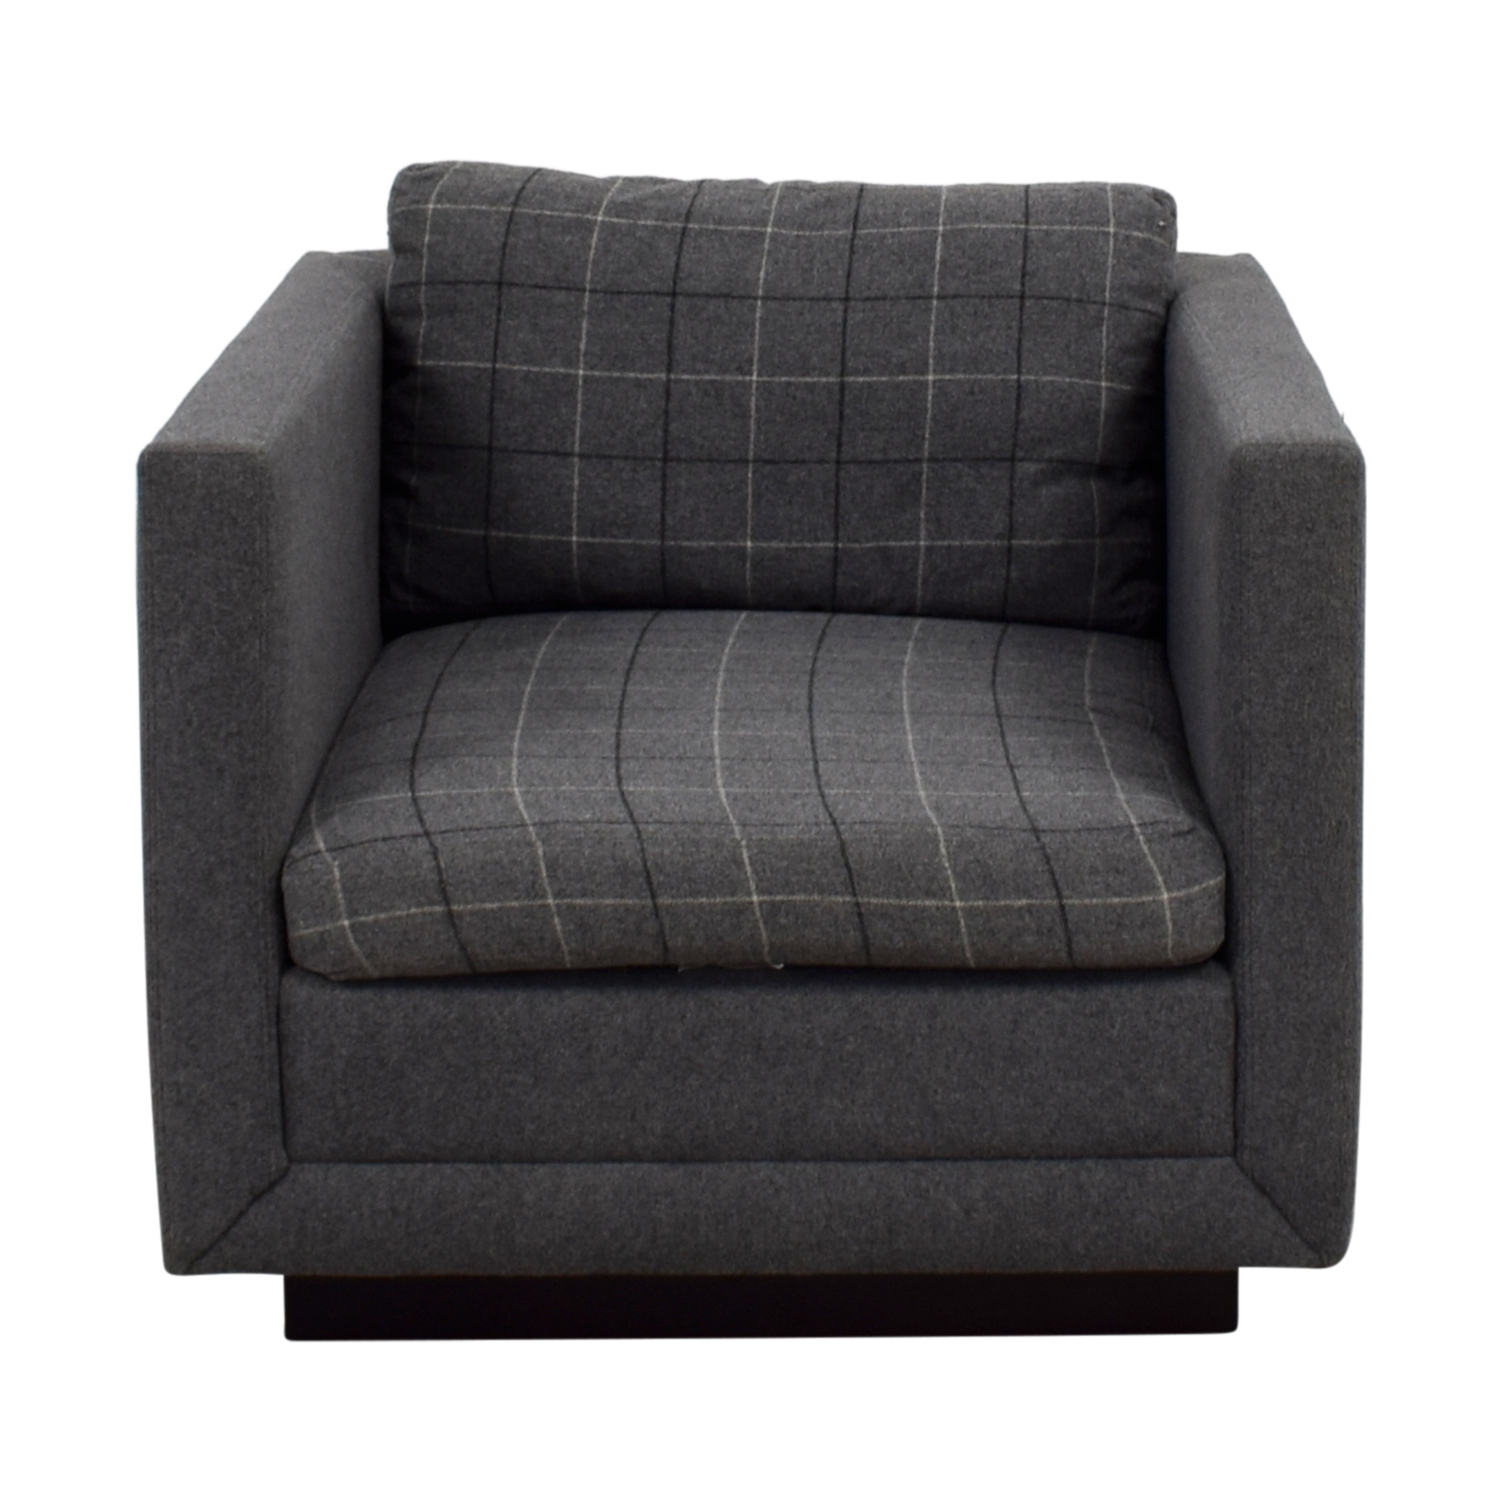 Jonathan Adler Jonathan Adler Blakeley Grey Plaid Accent Chair nyc